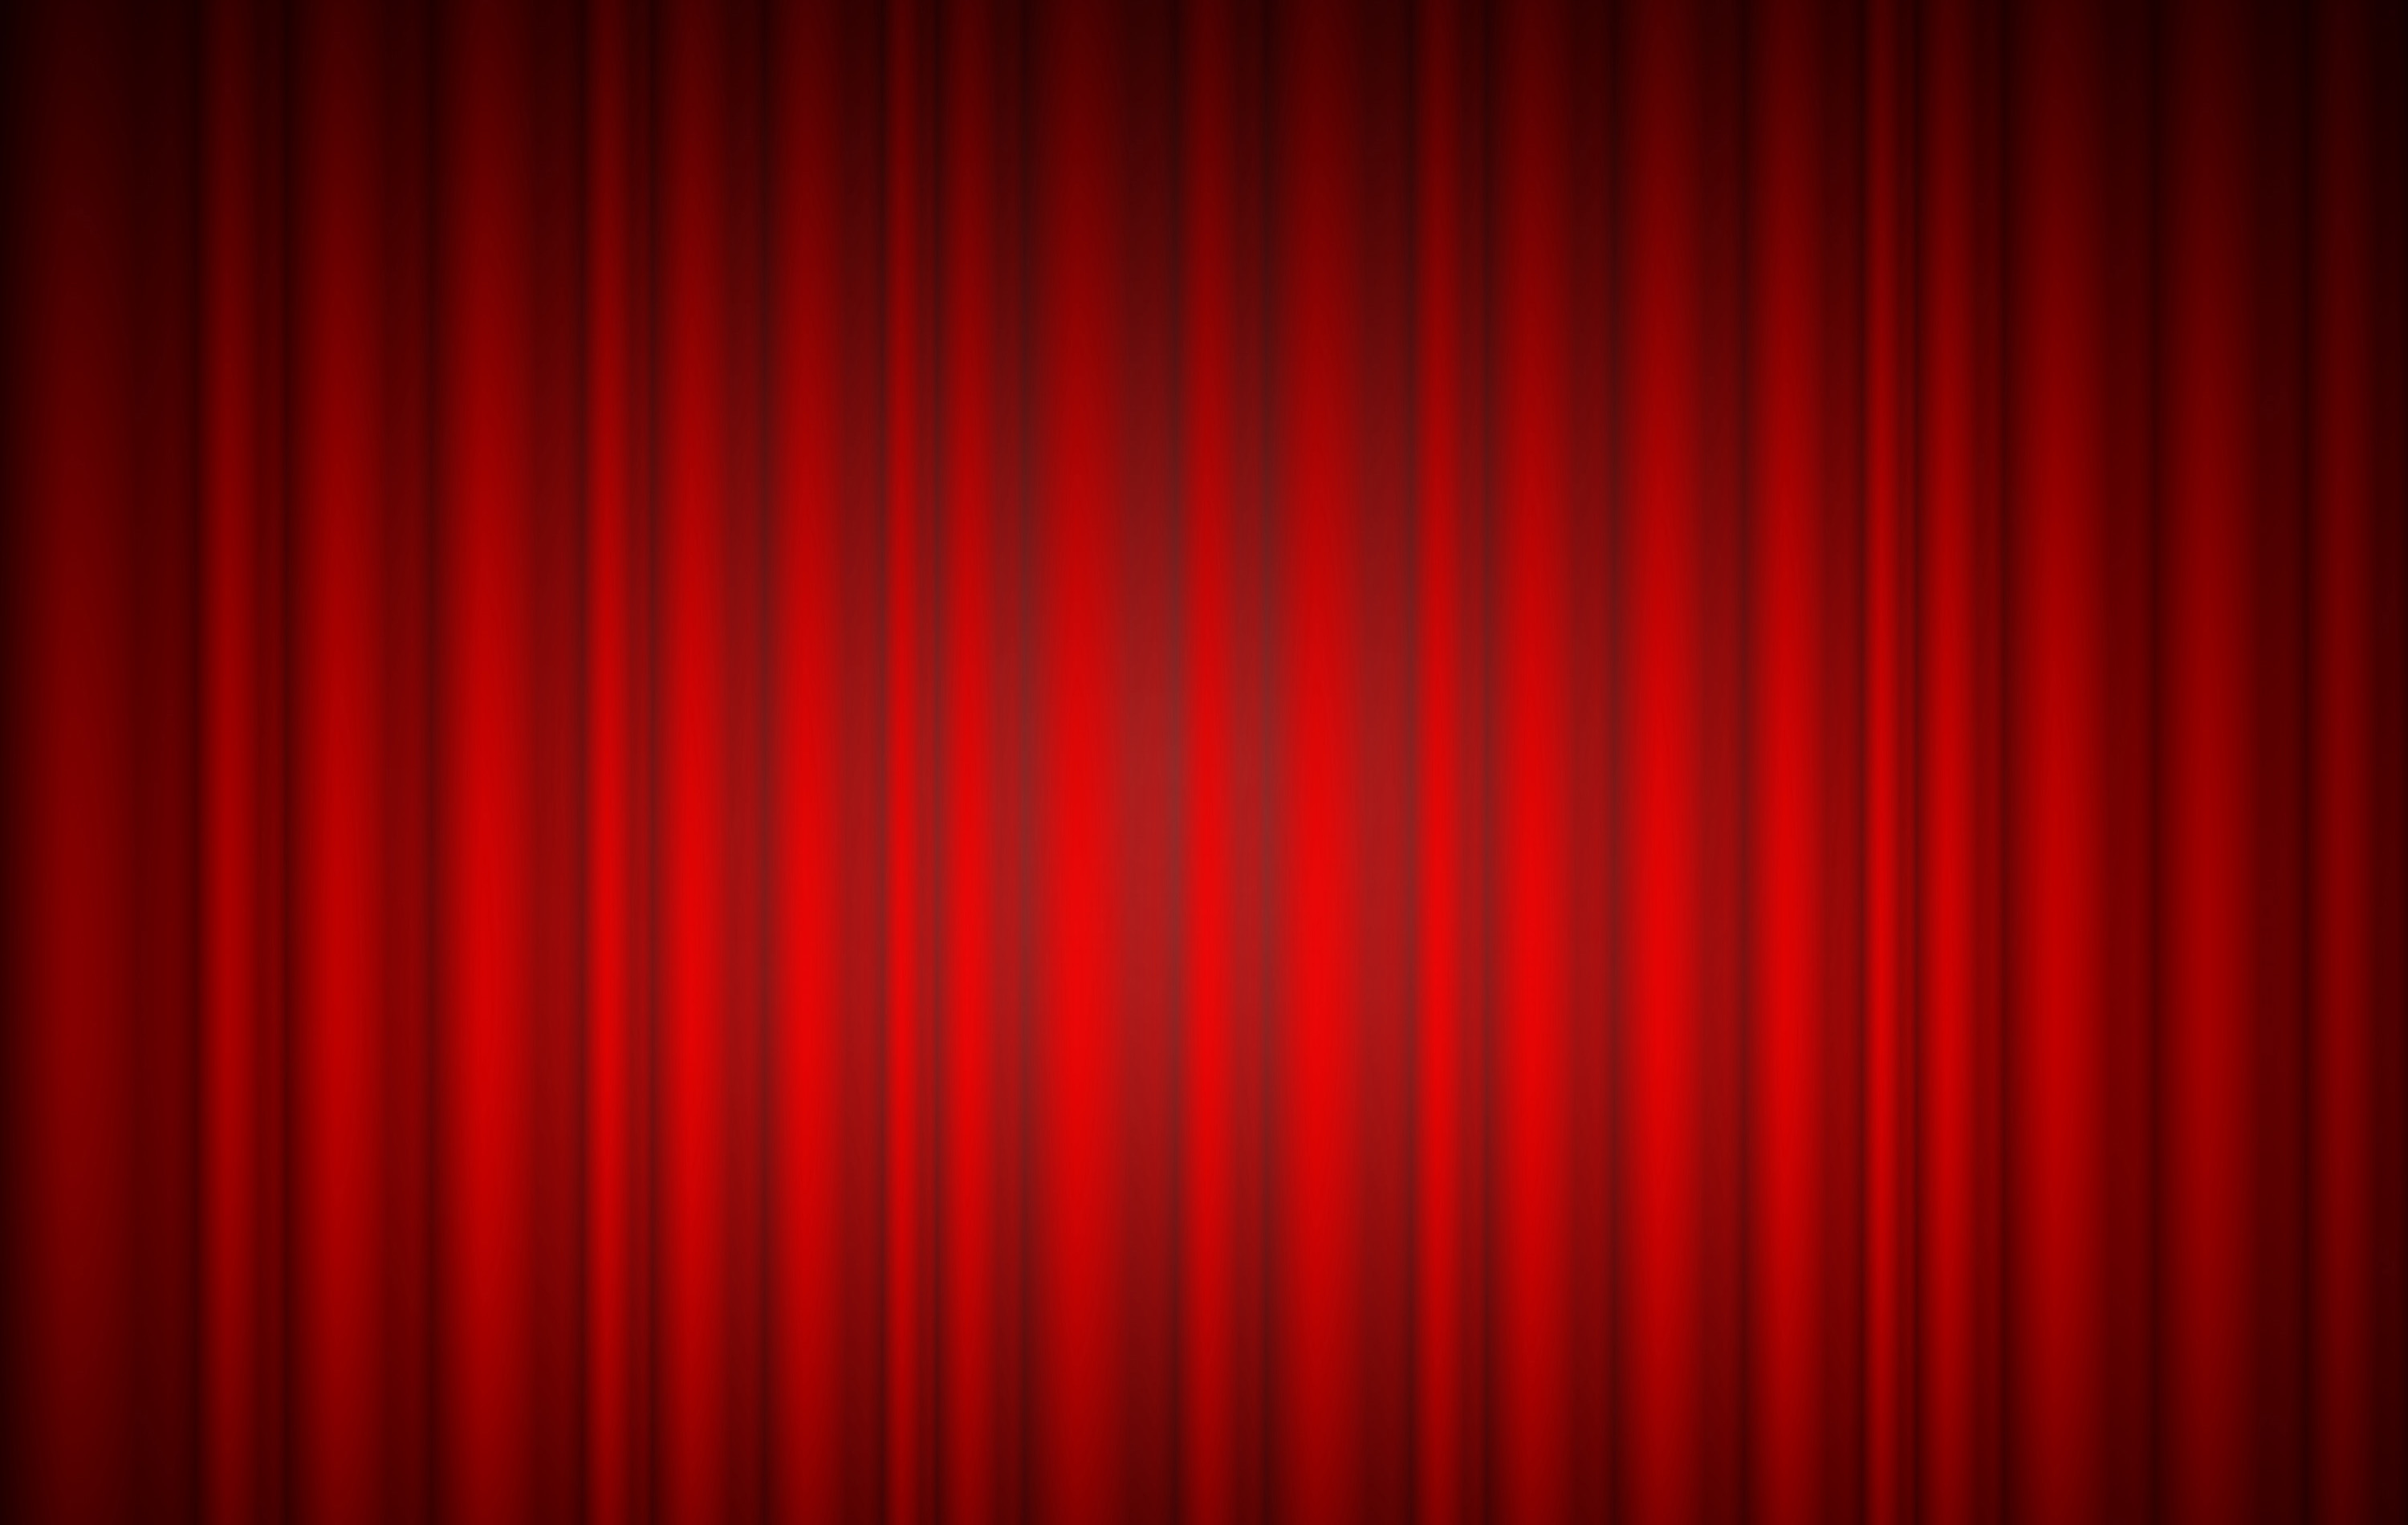 High resolution red curtain background made in photoshop theater